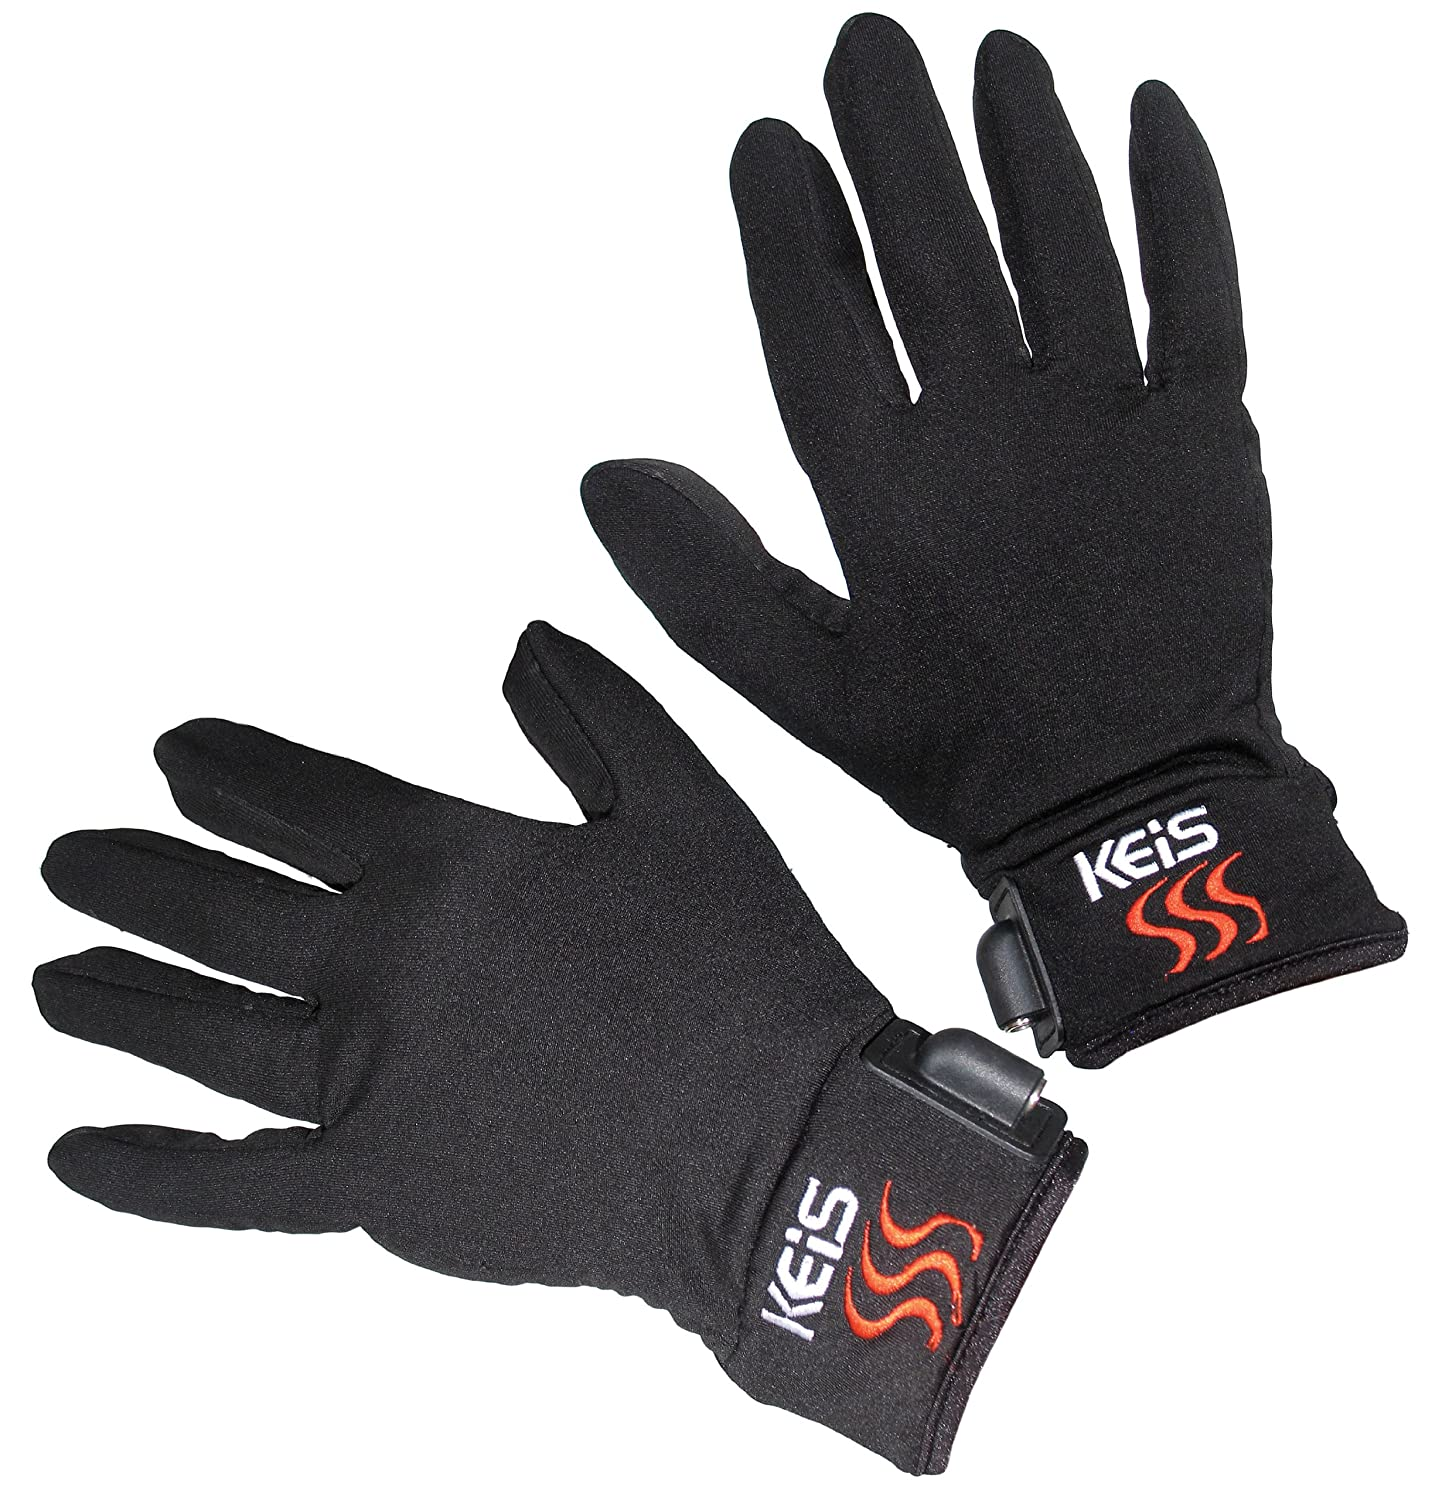 Motorcycle gloves heated battery - Keis Heated Motorcycle Inner Gloves Medium Amazon Co Uk Car Motorbike